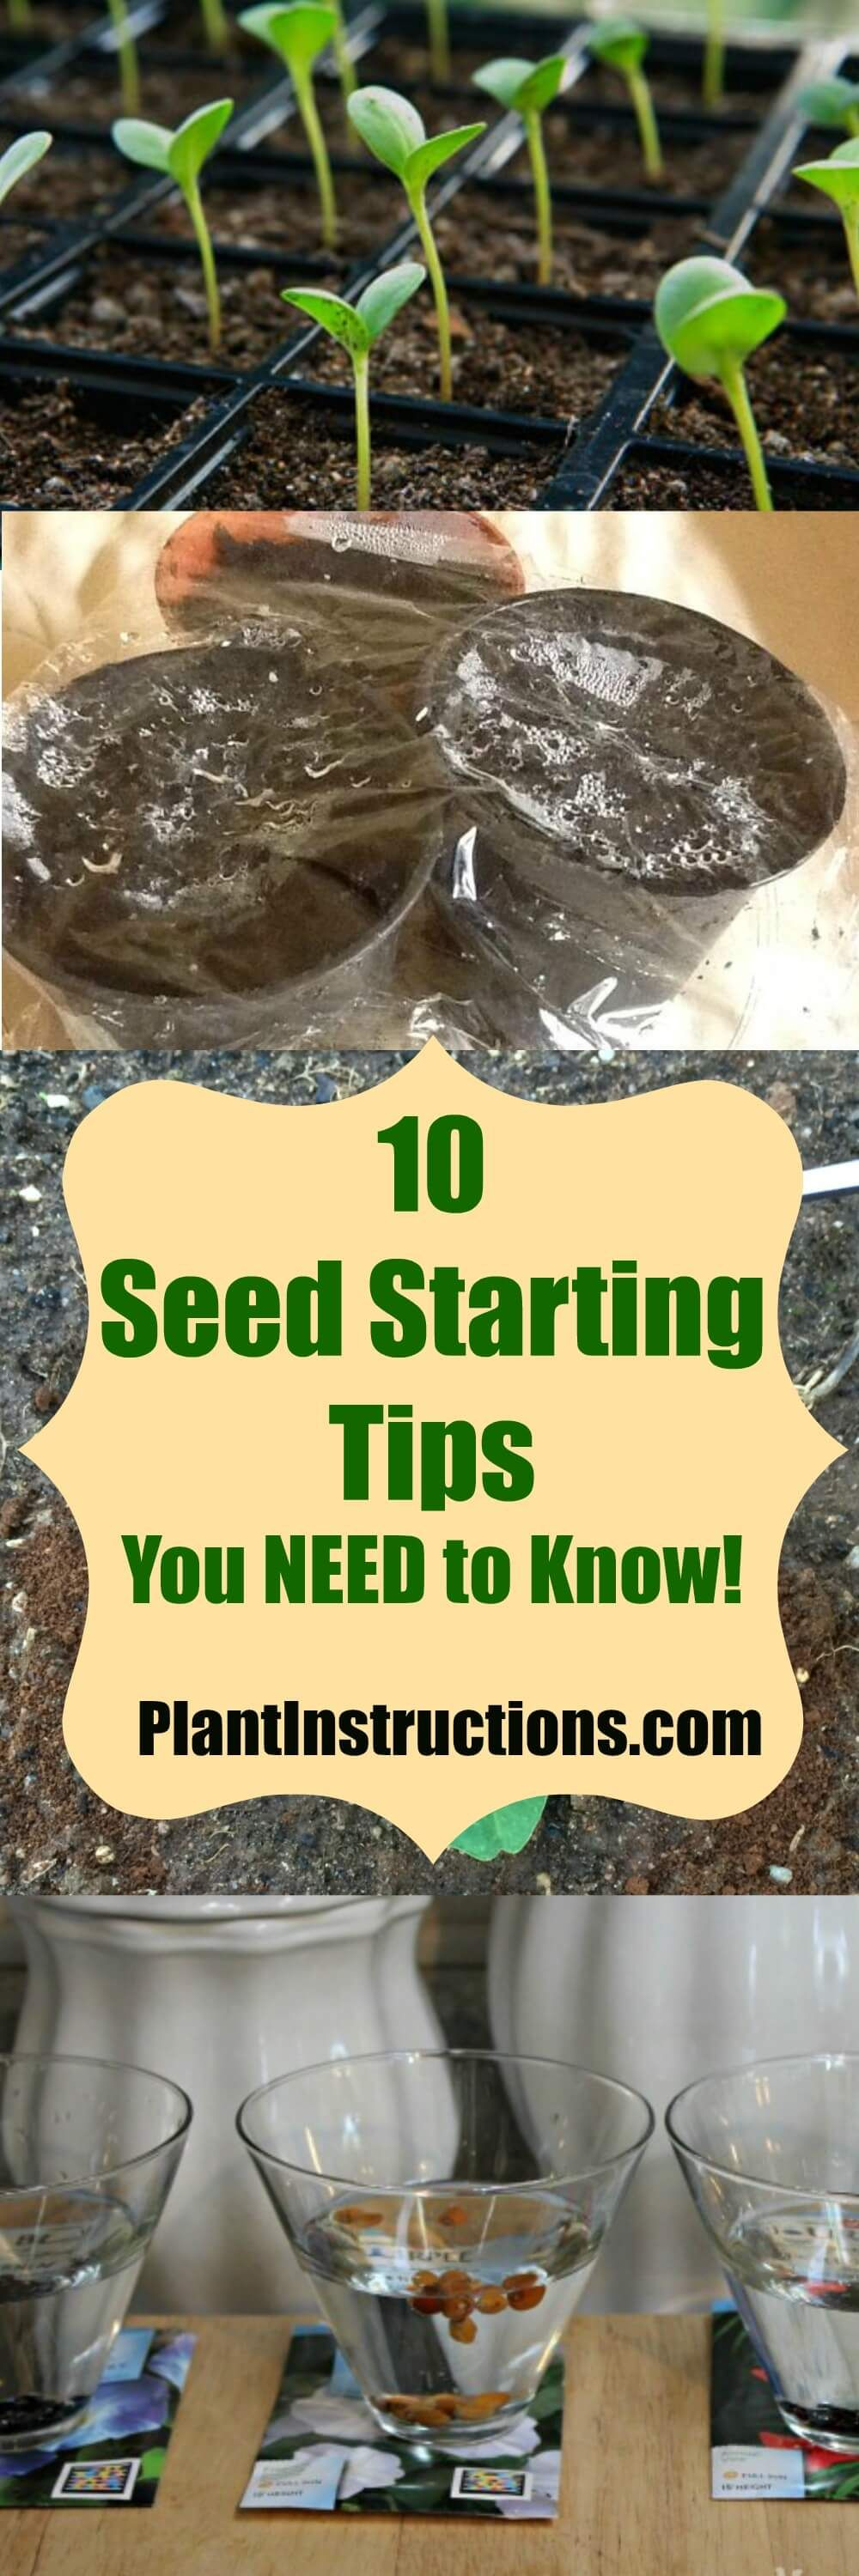 how long does grass take to grow after seeding